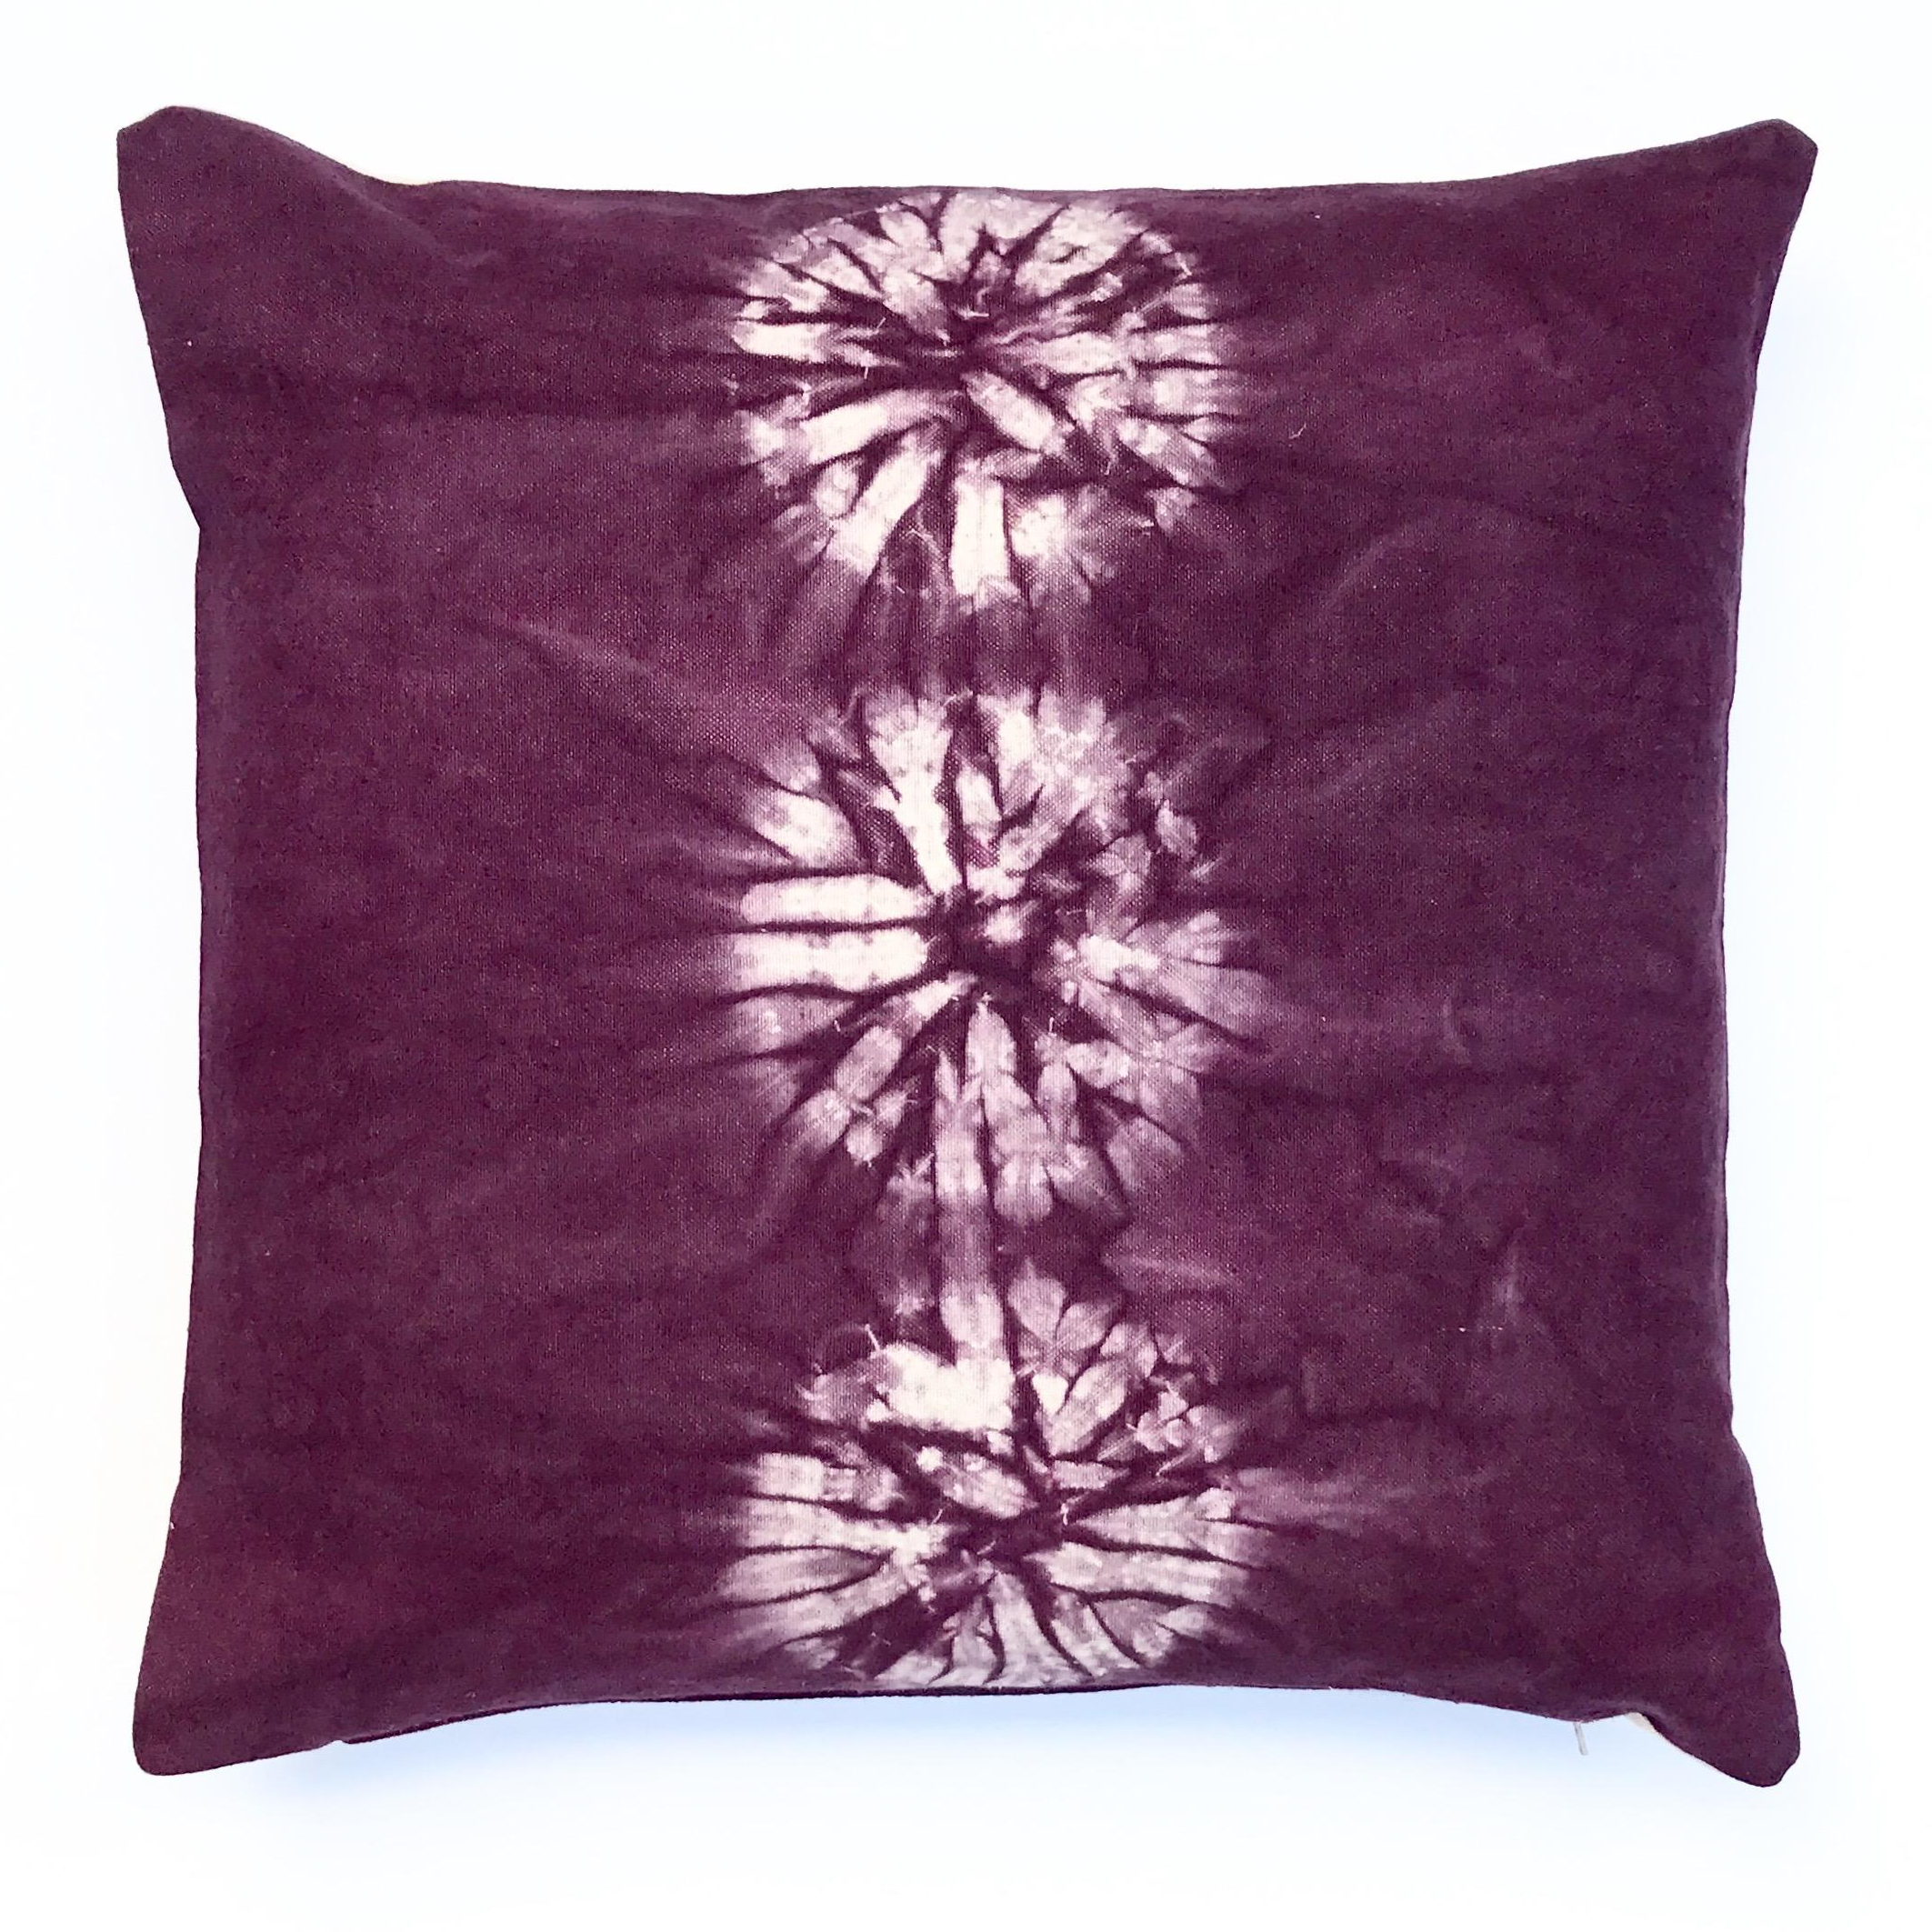 Circle Design Throw Pillows : Black Cherry Throw Pillow With Nui Shibori Circle Design Chairish